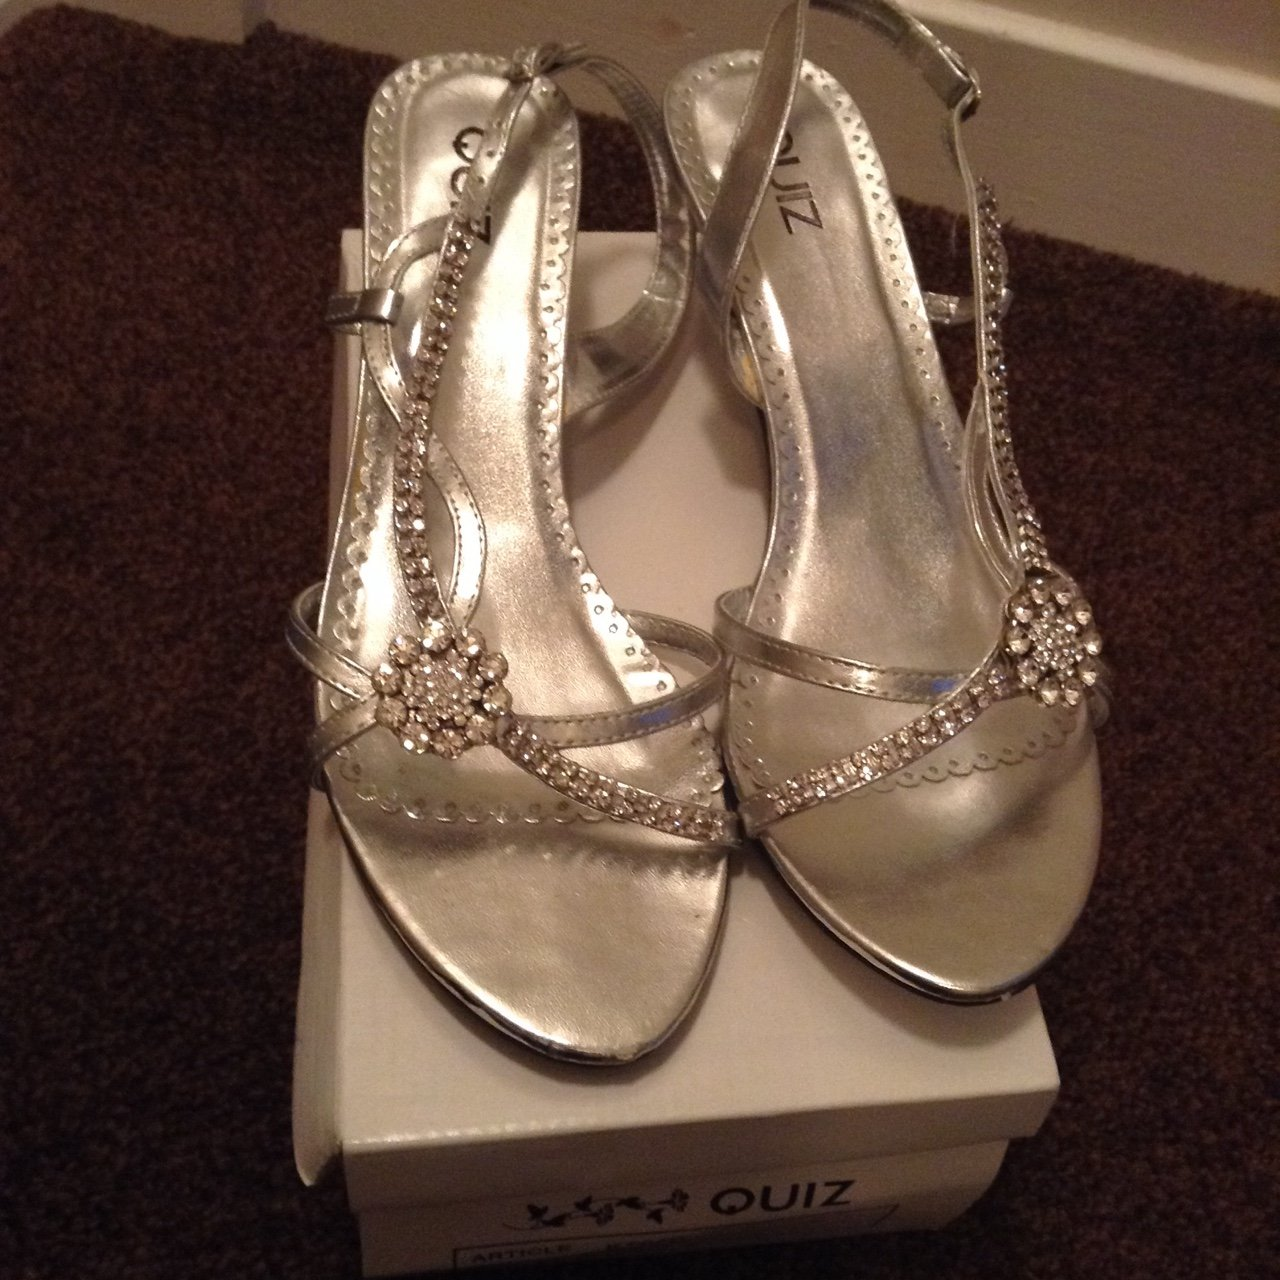 3f26588d6ce2 Quiz silver kitten sandal heels in size 7. Worn once however - Depop